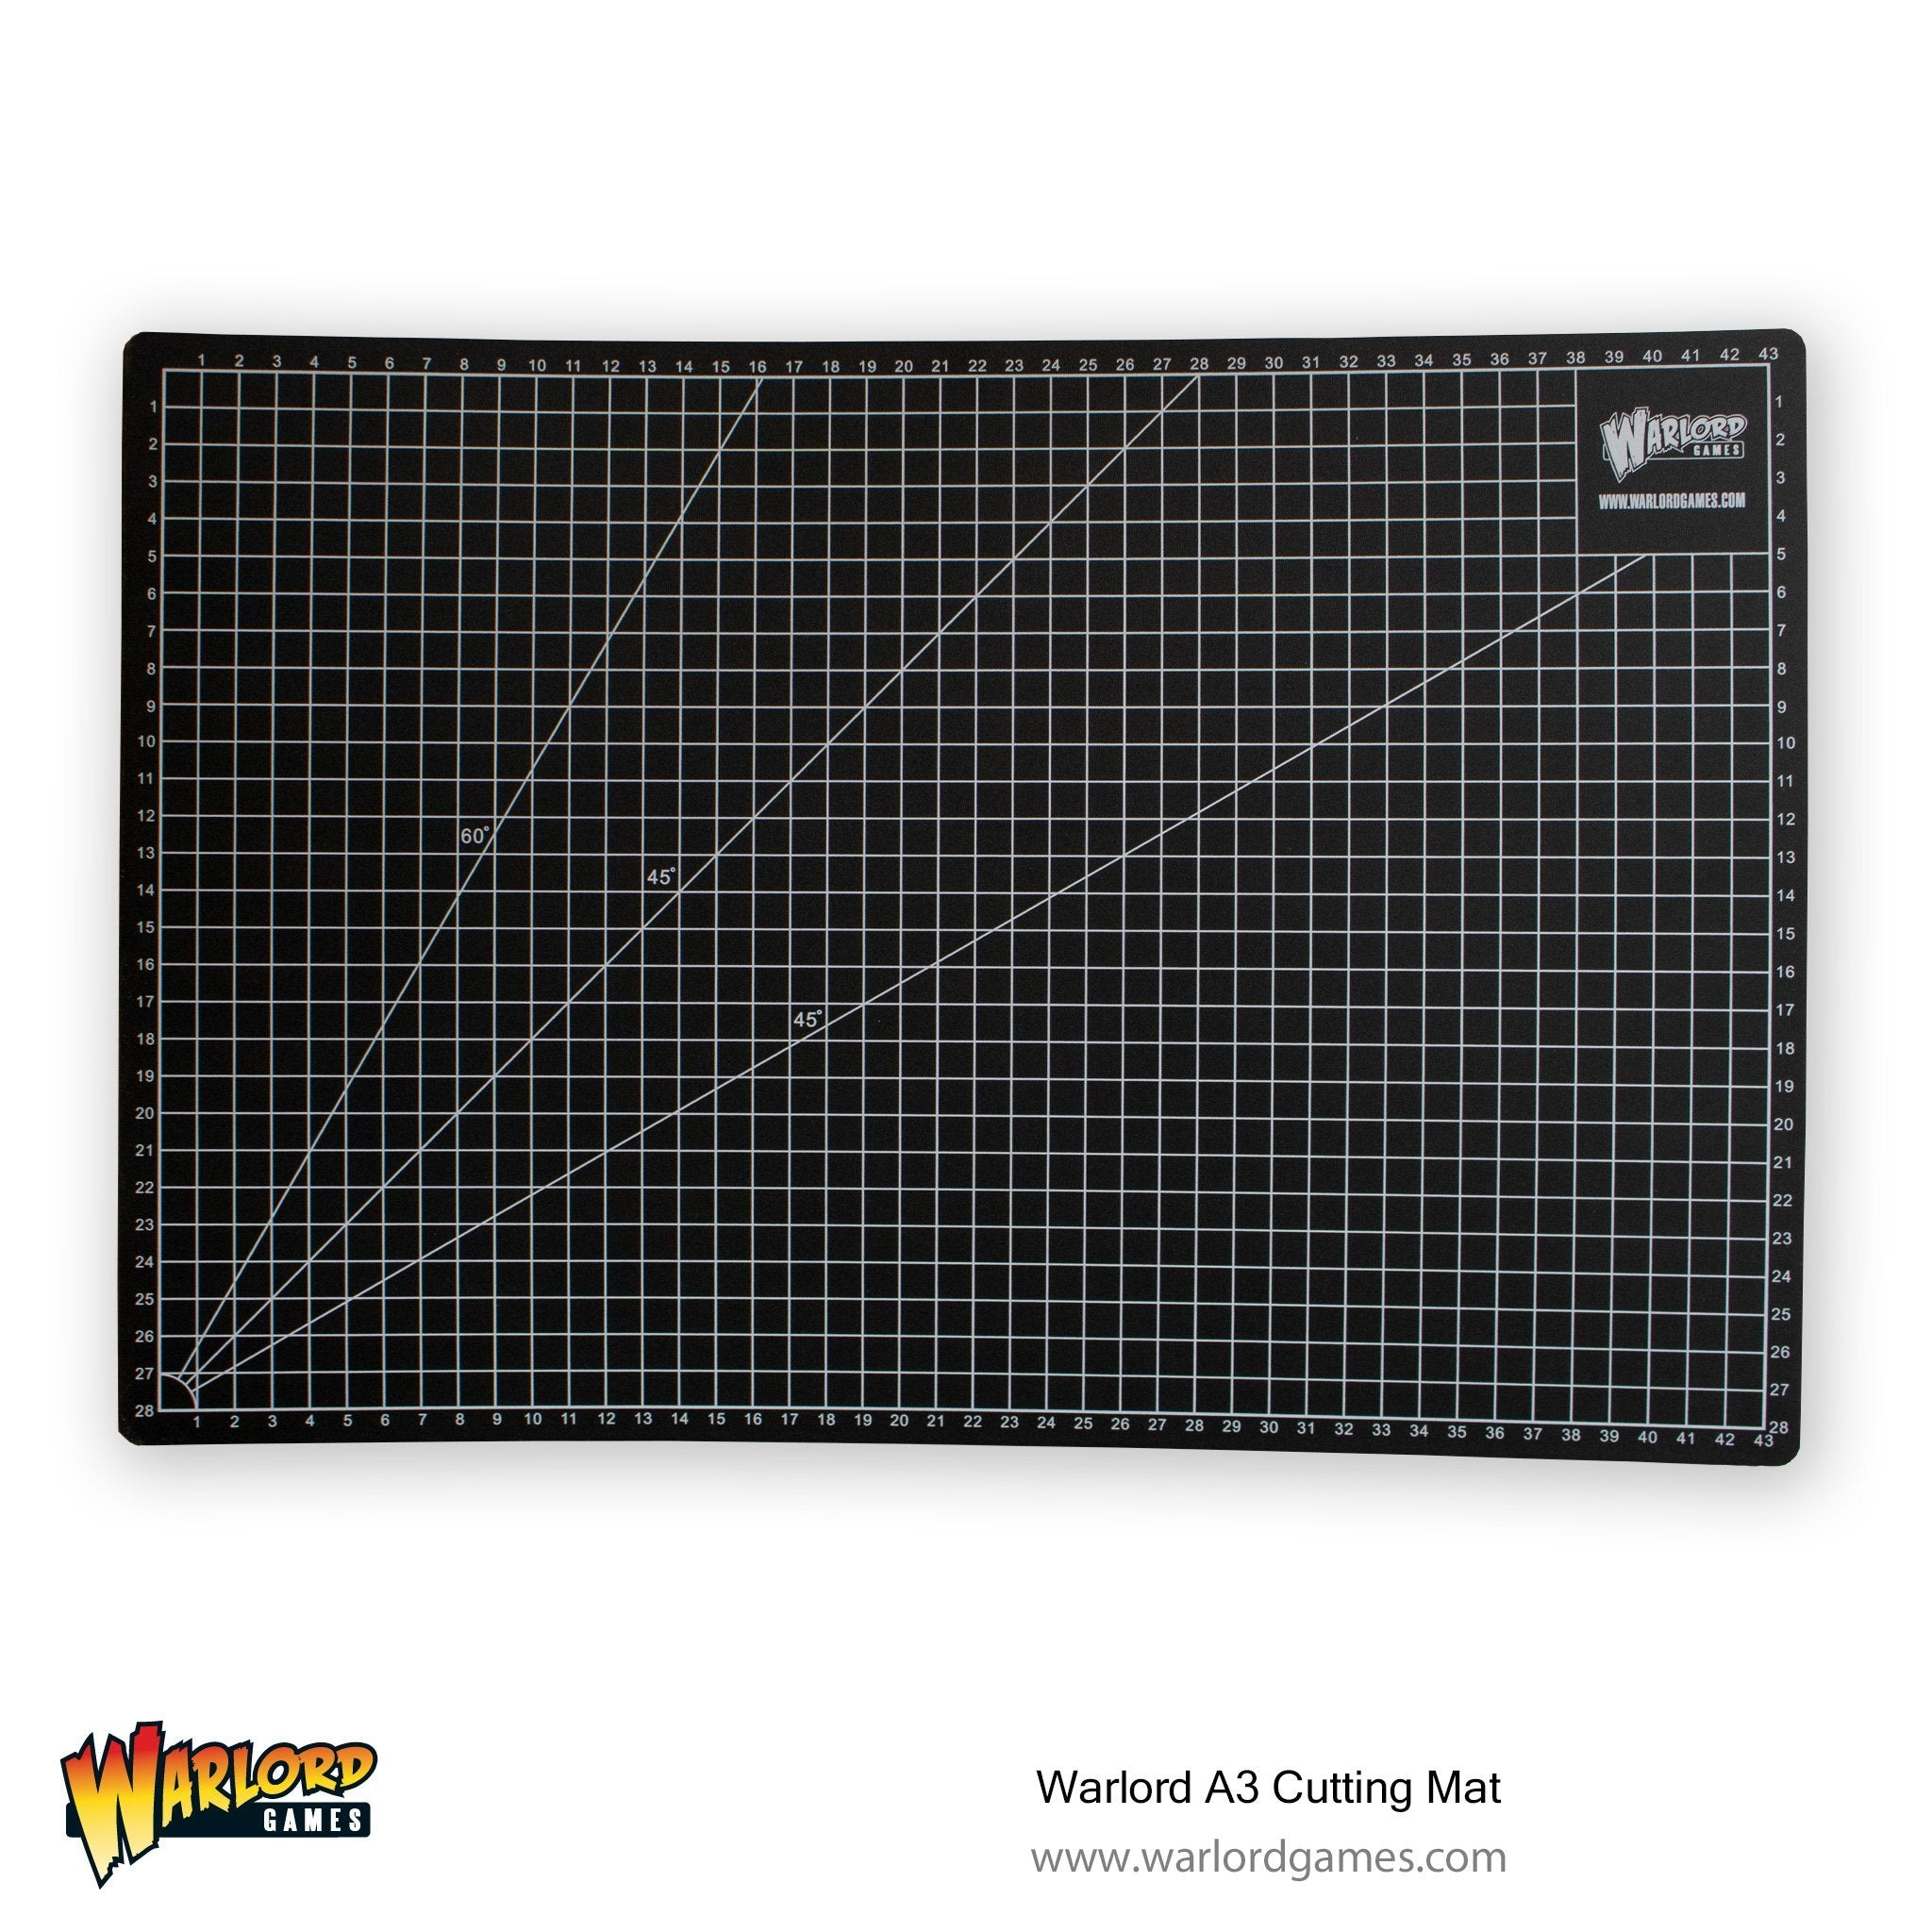 Warlord A3 Cutting Mat | Mythicos